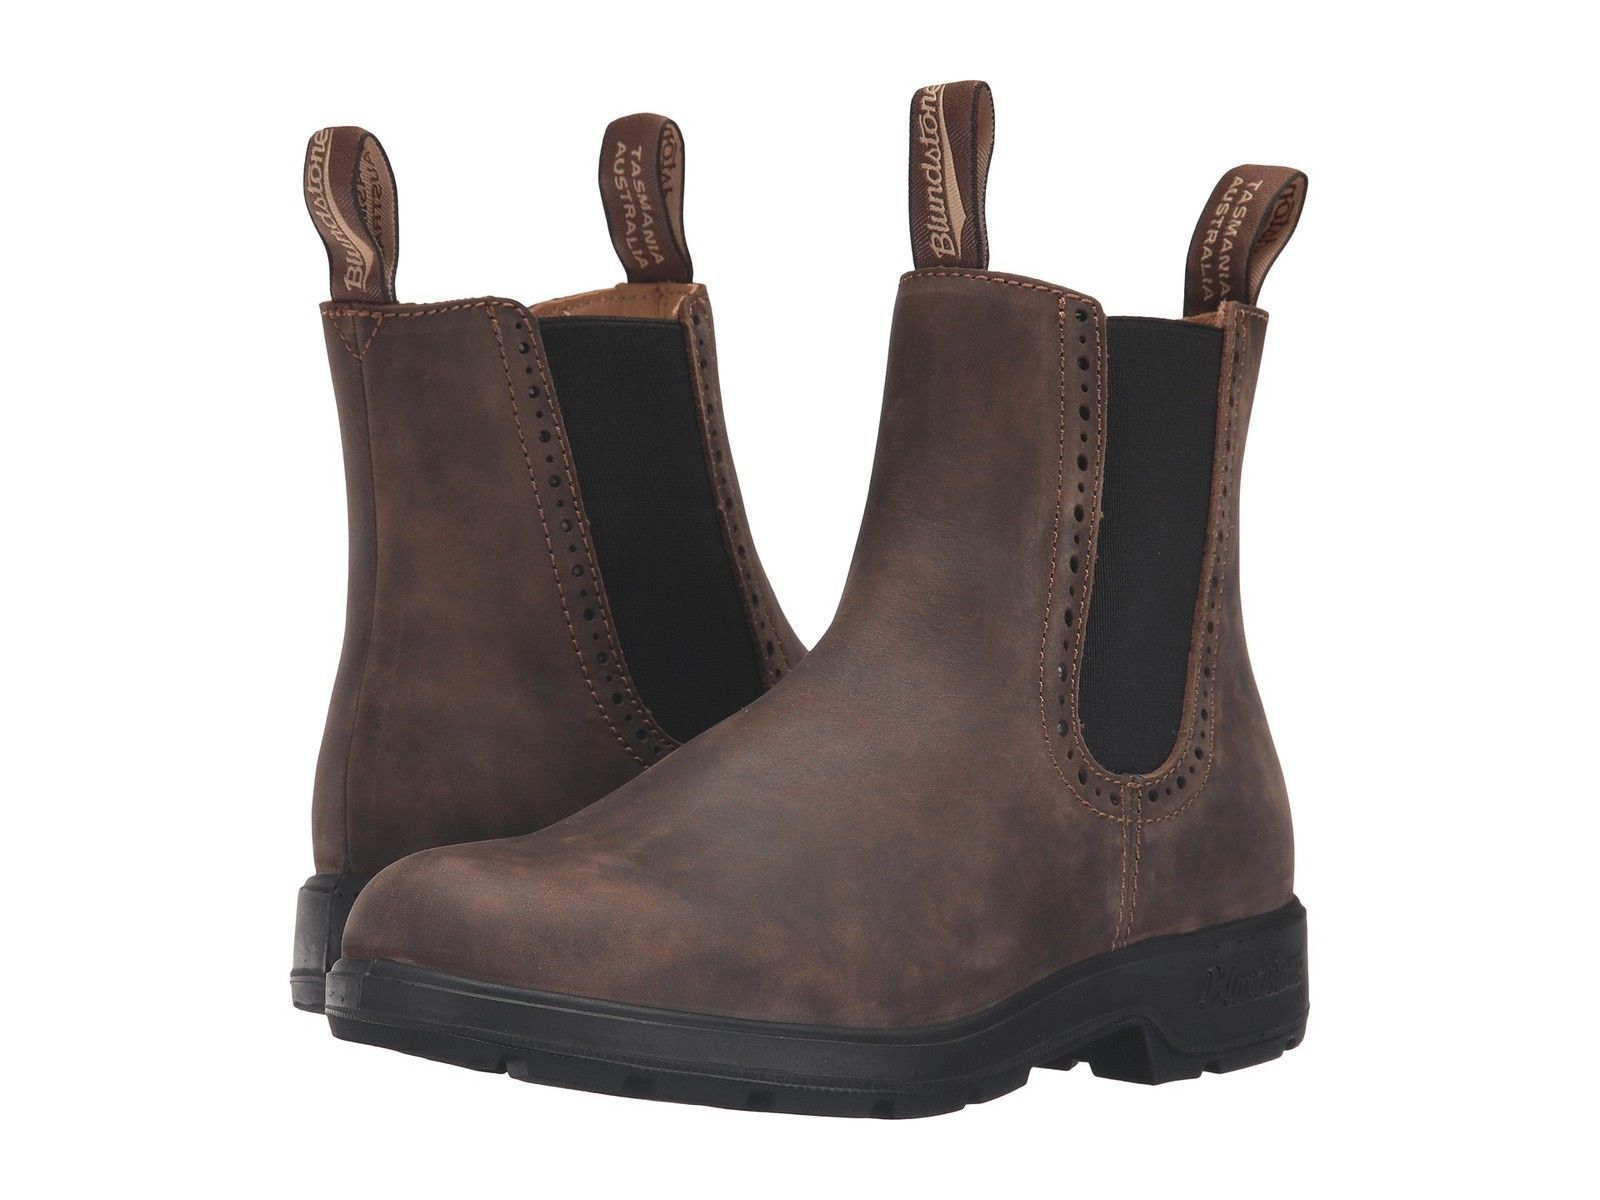 c2b9218017e5 Blundstone Women S Rustic Brown Premium Leather Casual Pull-On Boots 1351